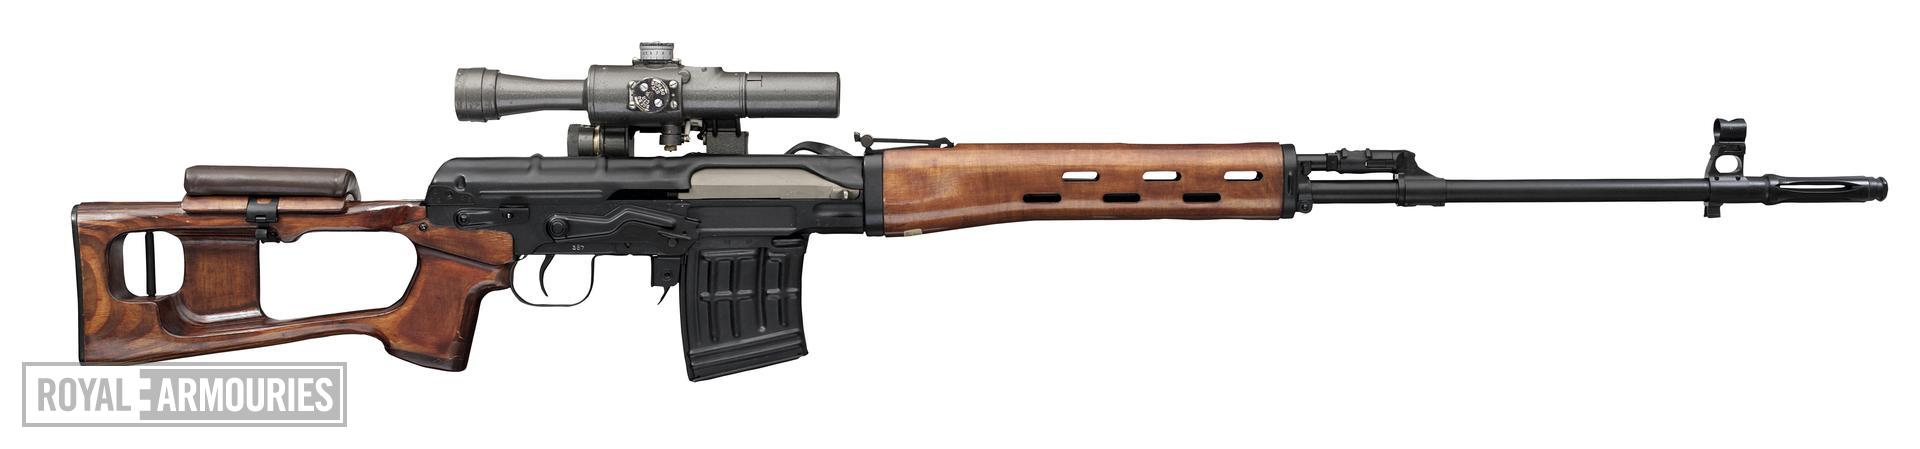 Centrefire self-loading rifle - Dragunov SVD With scope, No. N54694